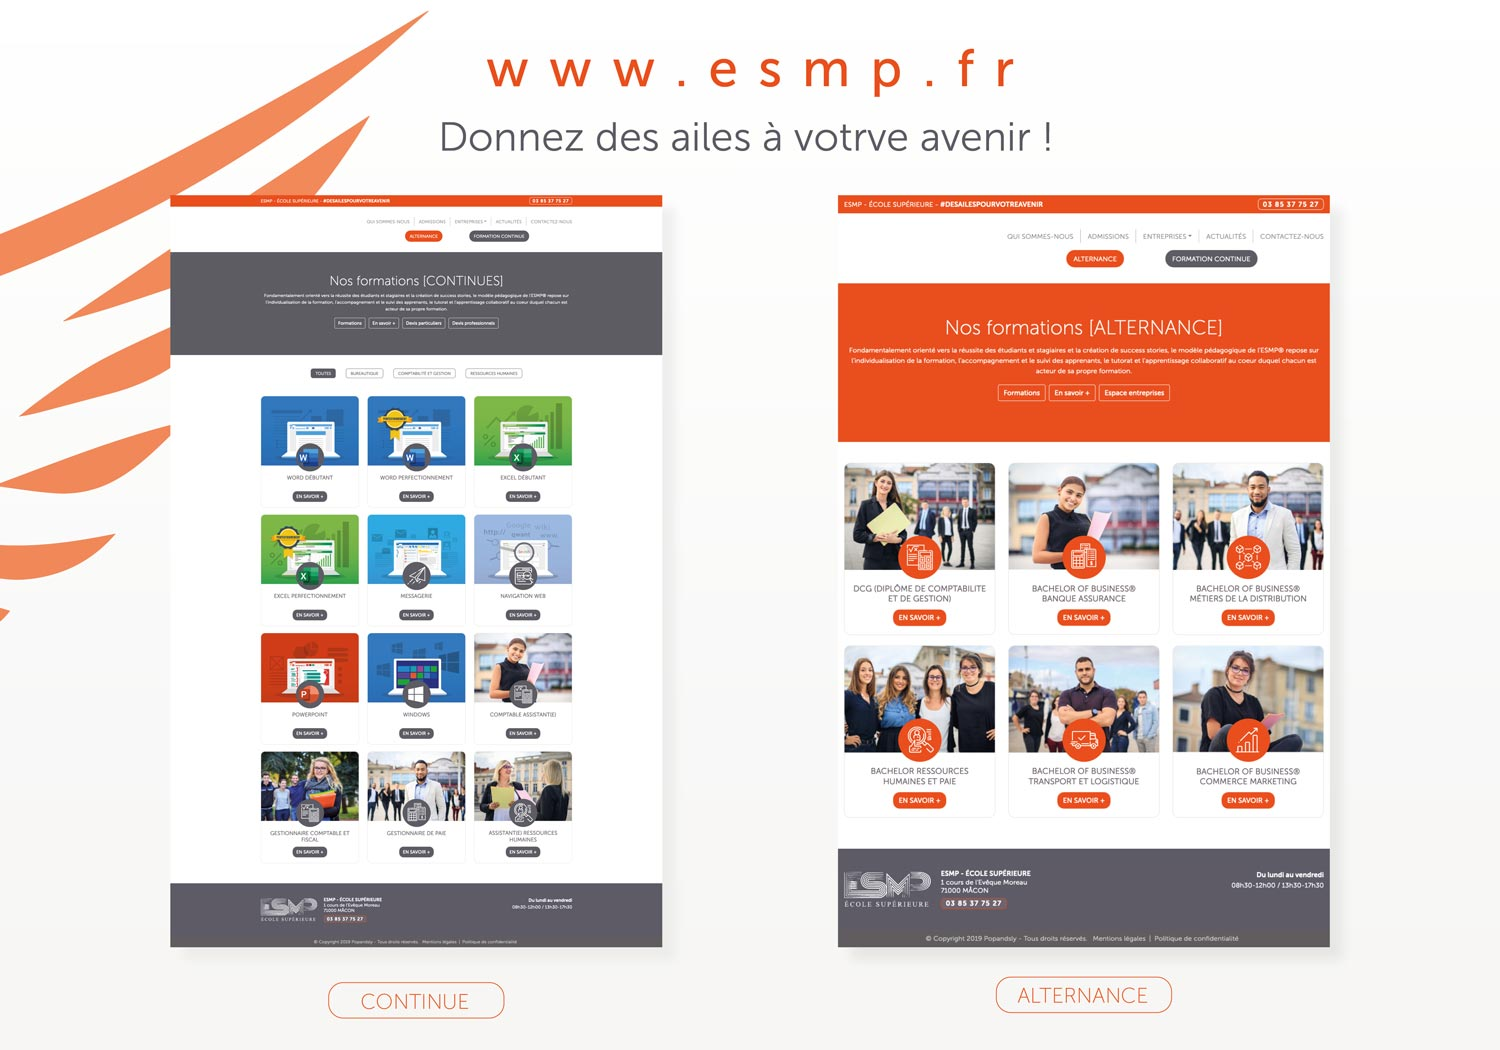 page alternance et formation continue